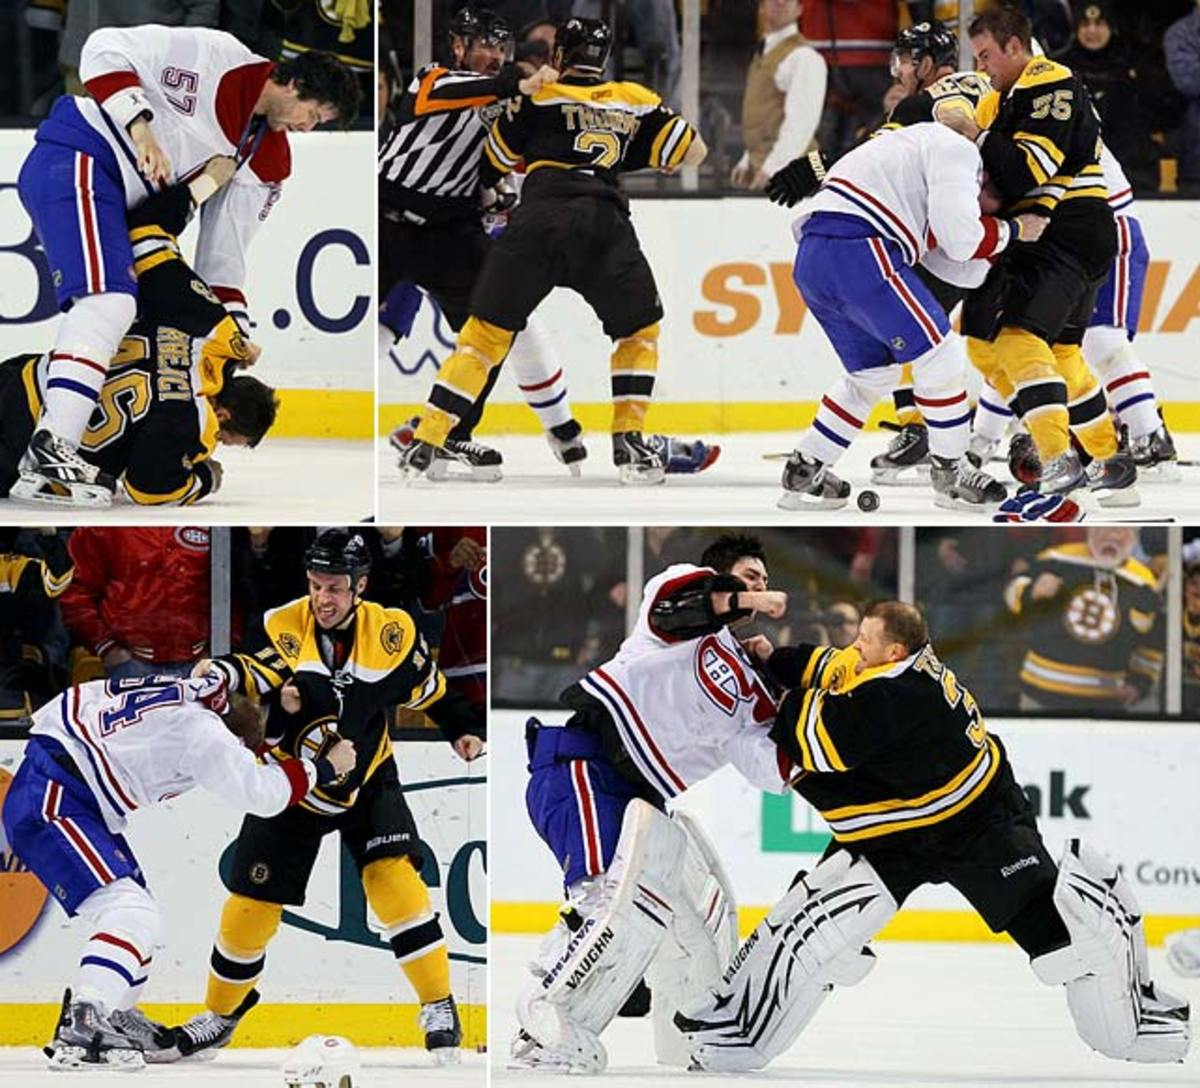 Brawl with the Habs